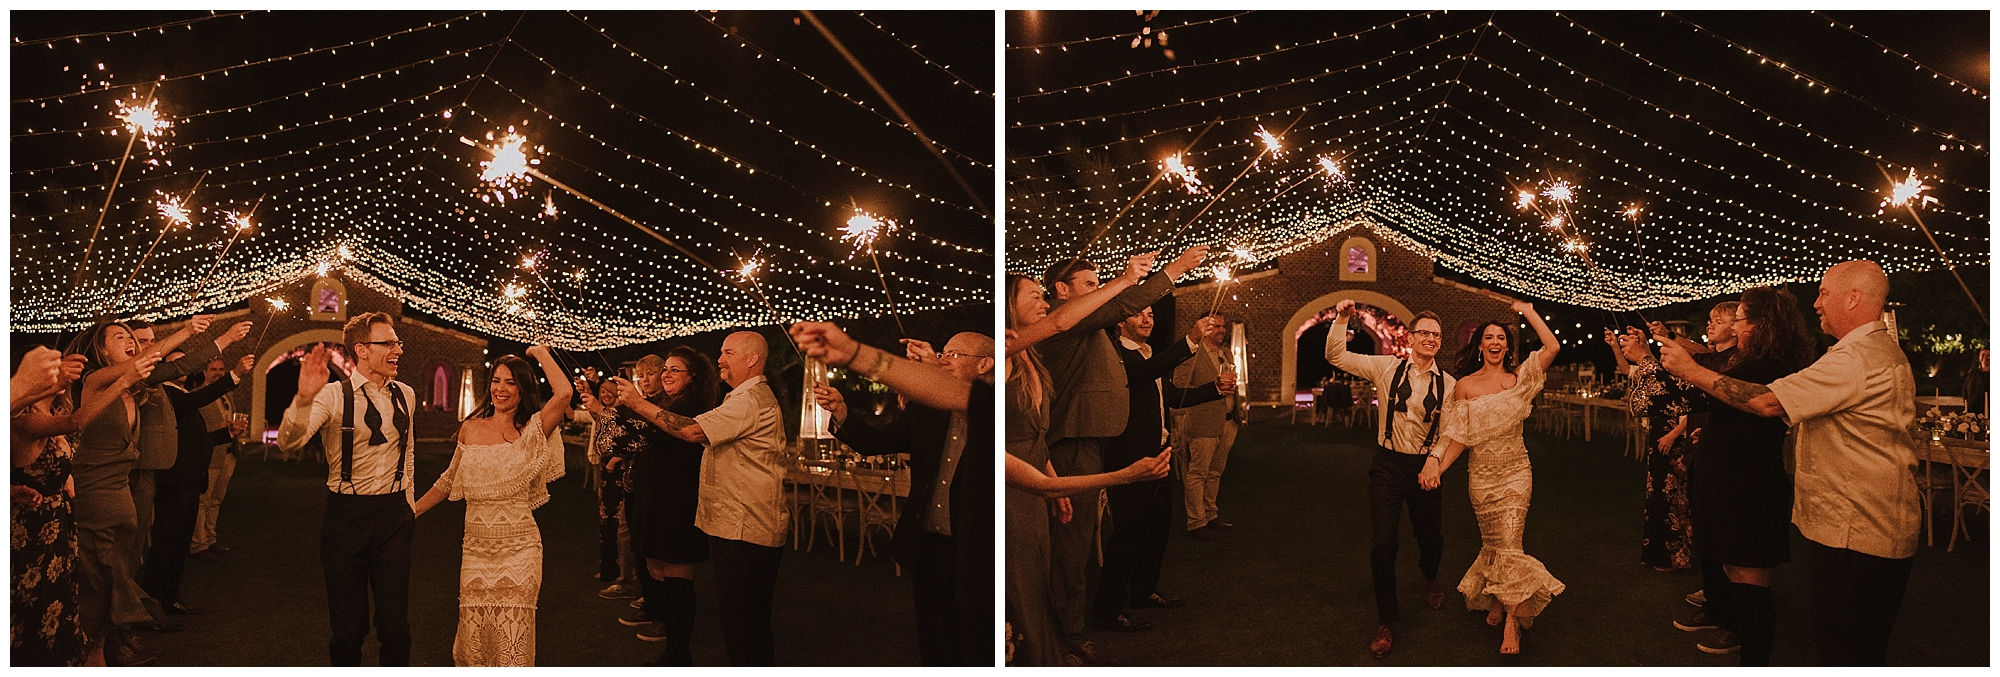 Using sparklers to bid farewell to the happy couple on what was a beautiful Cabo wedding